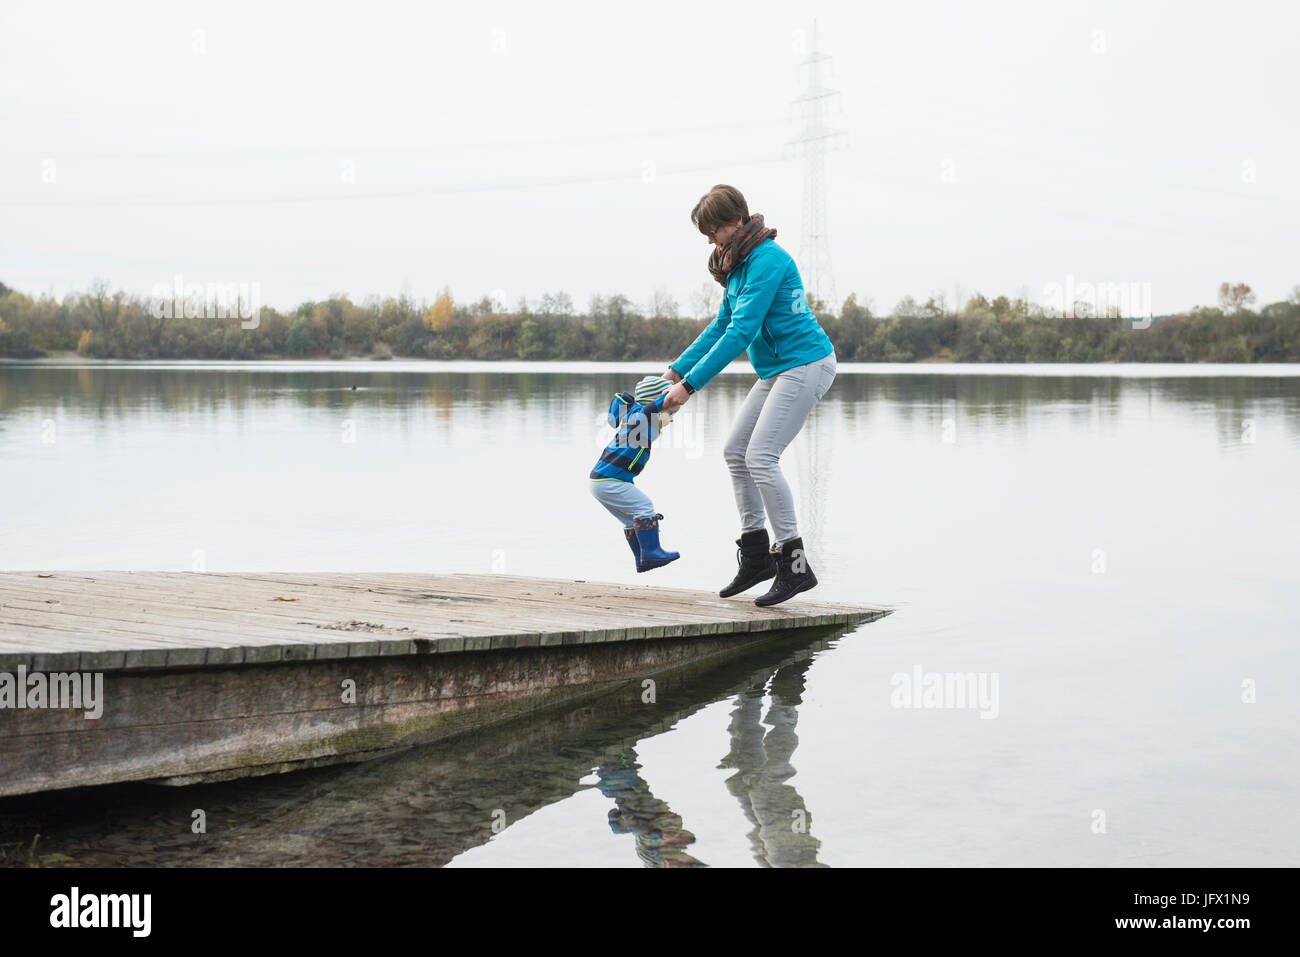 Mother and son jumping hand in hand on a landing stage at a lake in the autumn - Stock Image